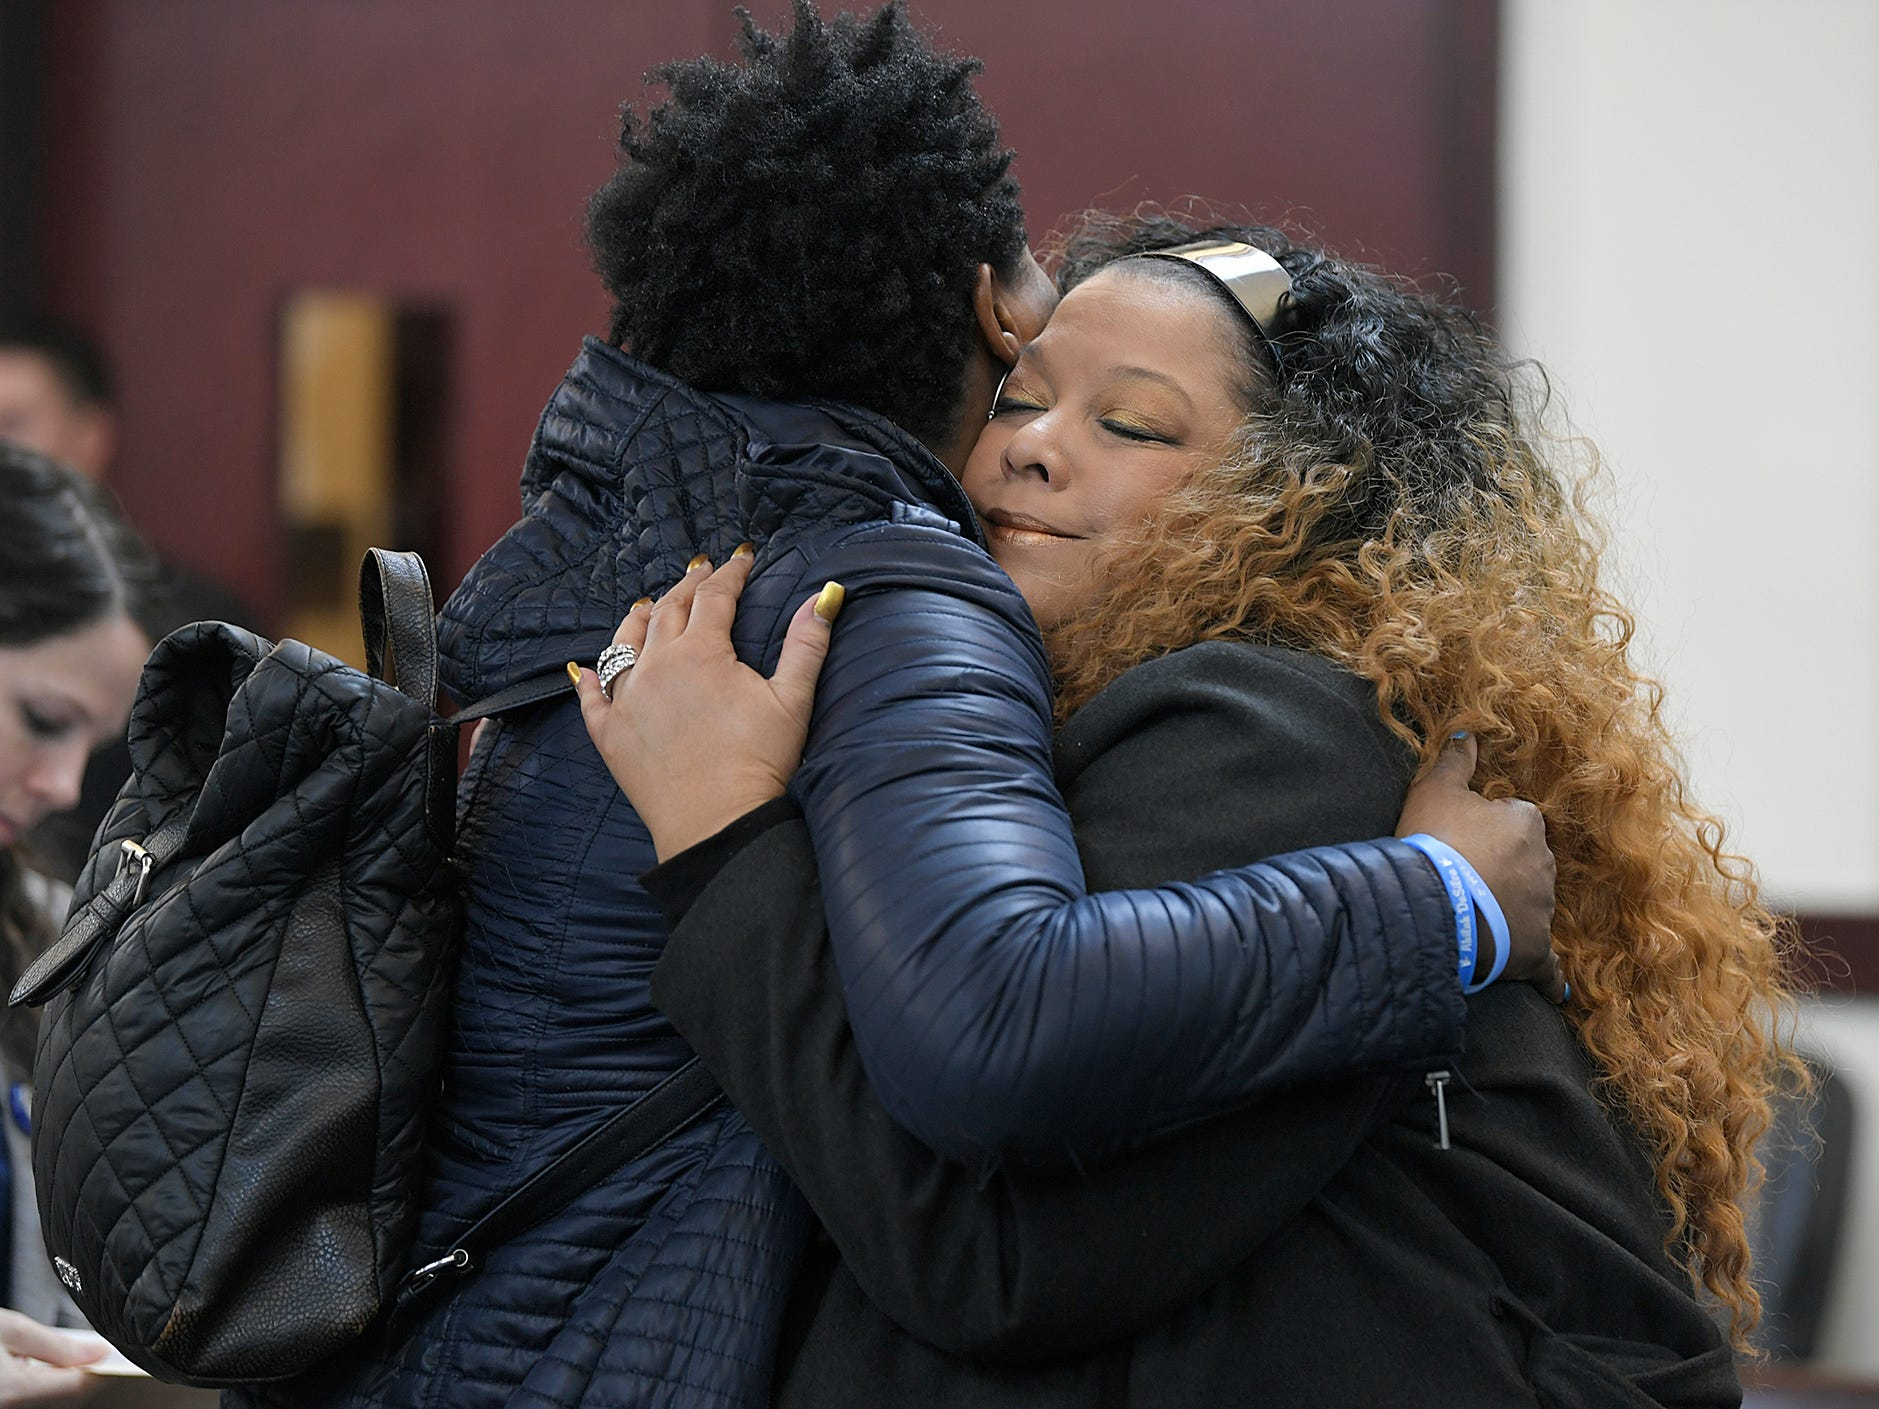 Family members and friends of Waffle House victims embrace each other before a hearing for shooting suspect Travis Reinking. His public defender Jon Wing entered a not guilty plea during a hearing in Judge Mark Fishburn's courtroom in Nashville on Wednesday, Feb. 13, 2019.  Reinking faces 17 charges related to the mass shooting that killed four people at a Waffle House in 2018.